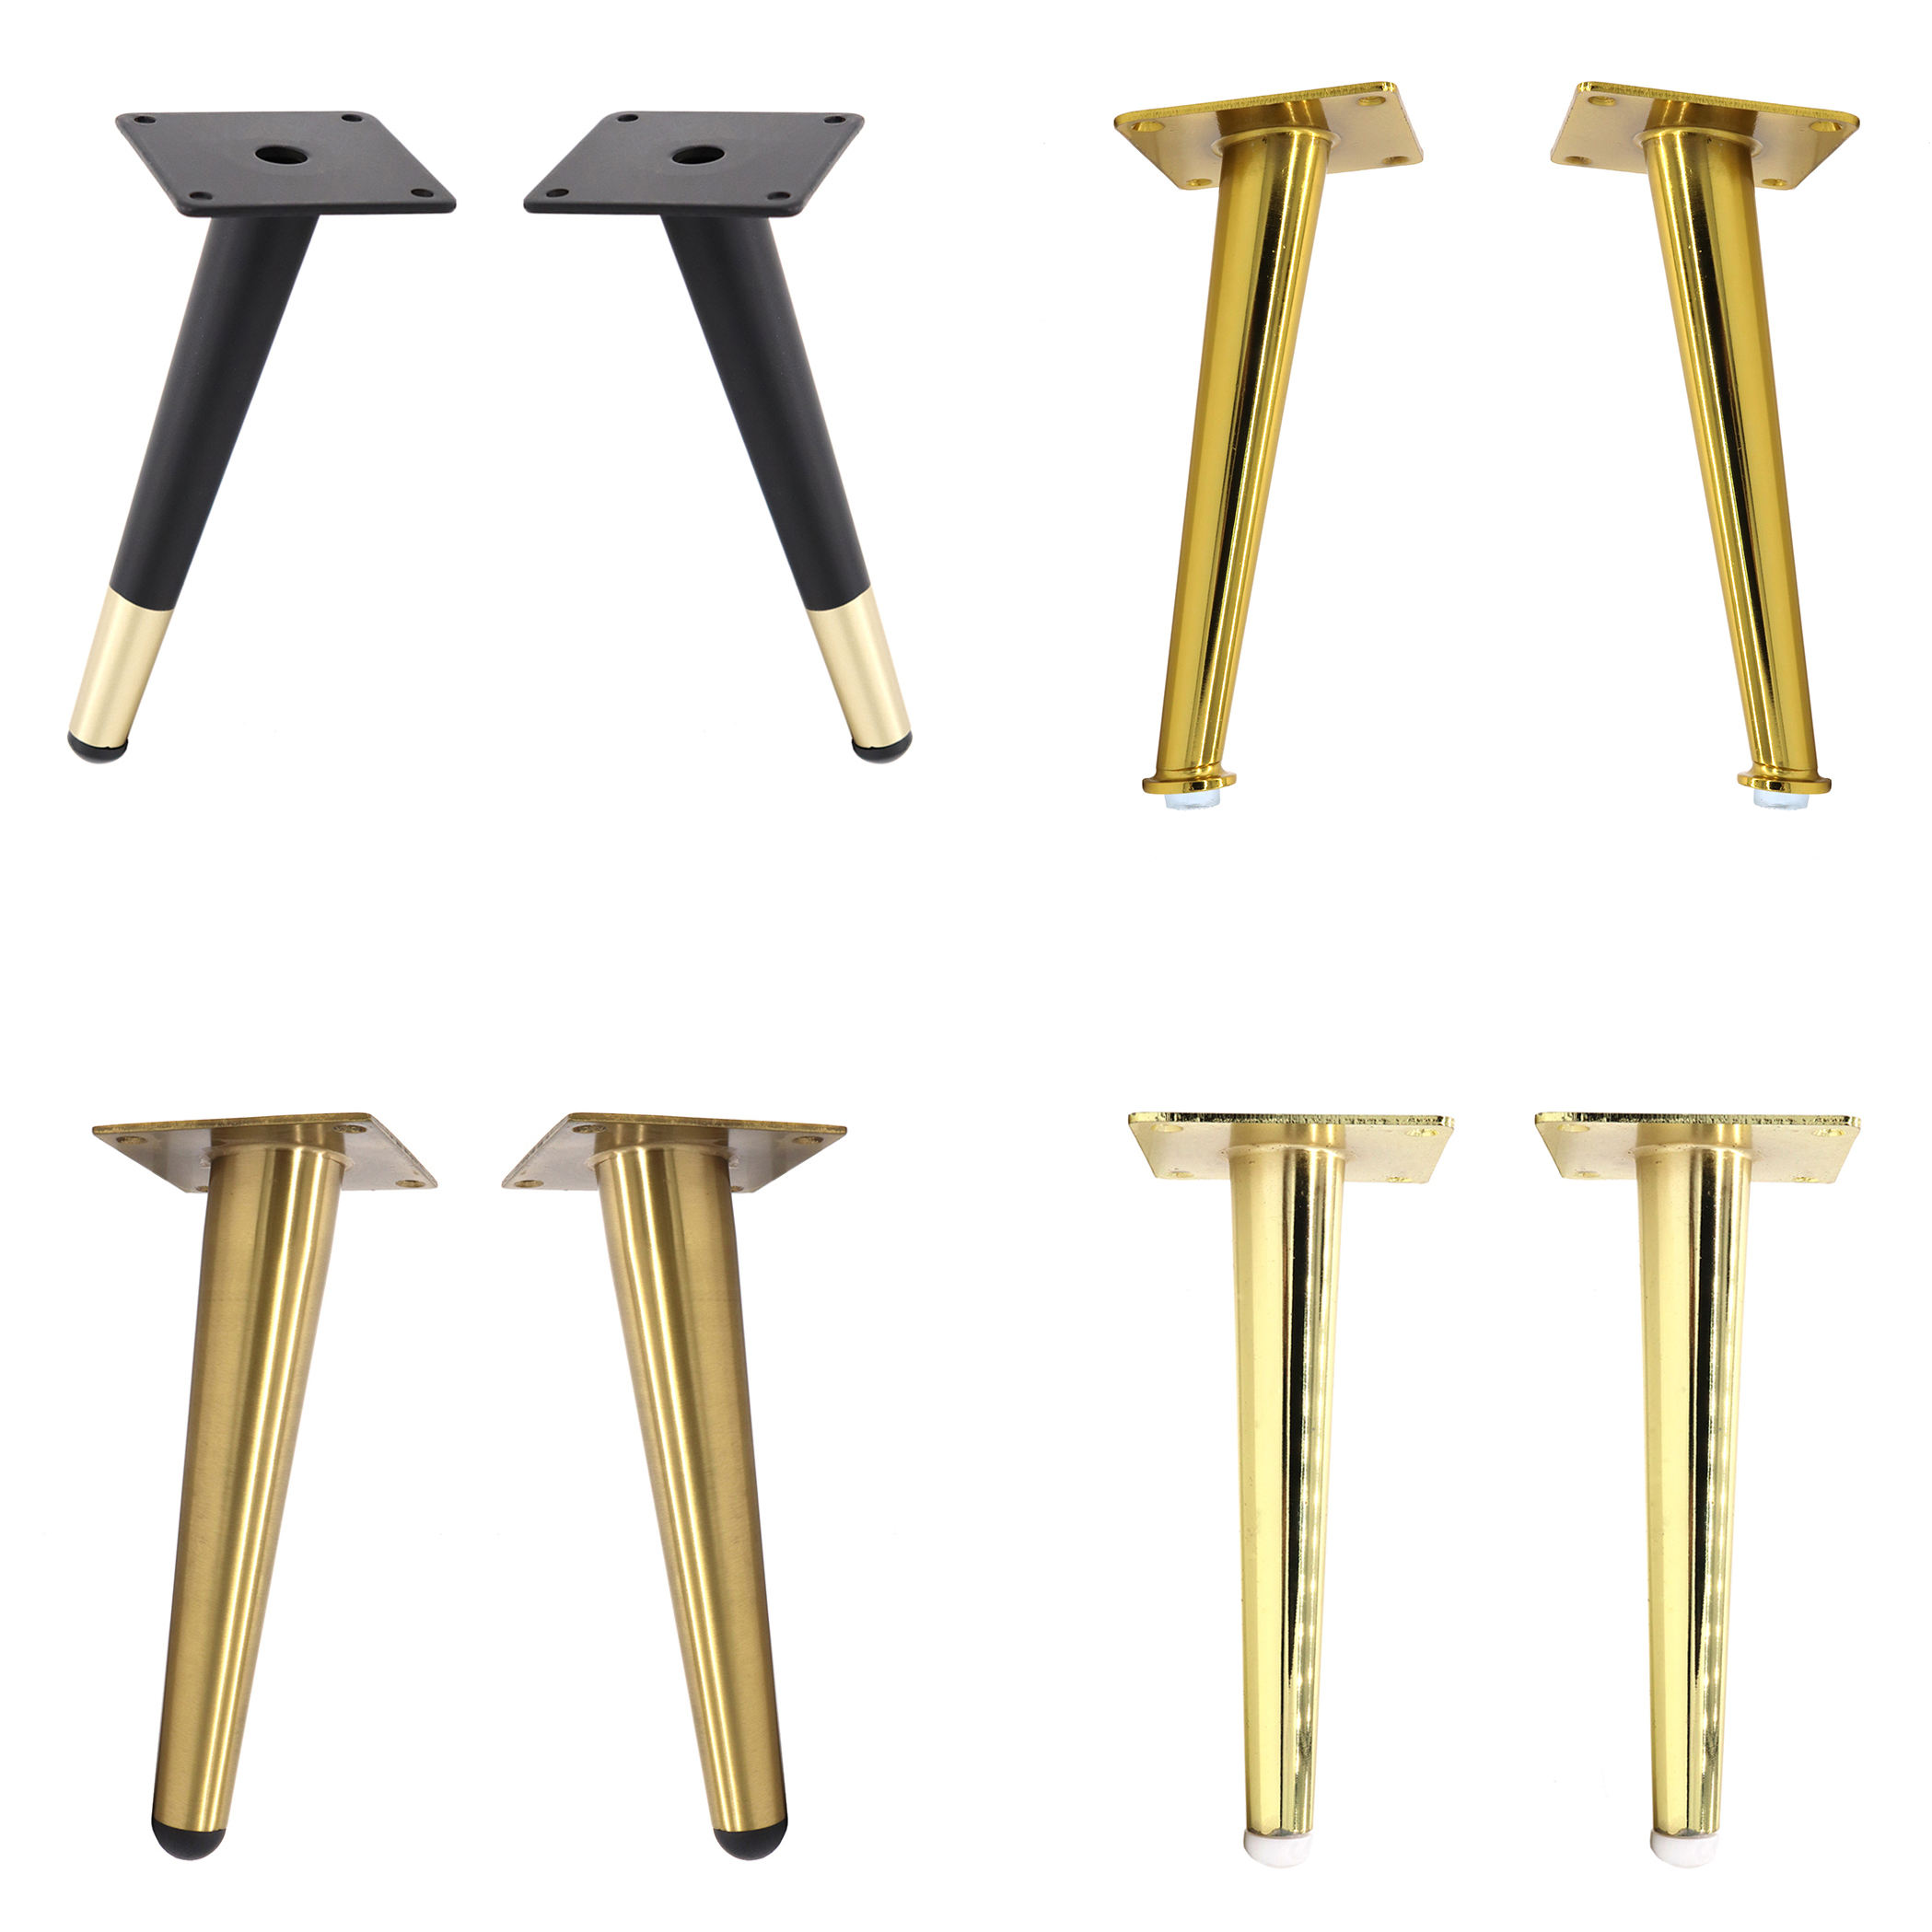 Sofa Leg 100mm - 400mm Iron Tapered Chair Support Gold Brass Steel Furniture Feet BedSide Bed Chrome Cabinet Metal Sofa Leg